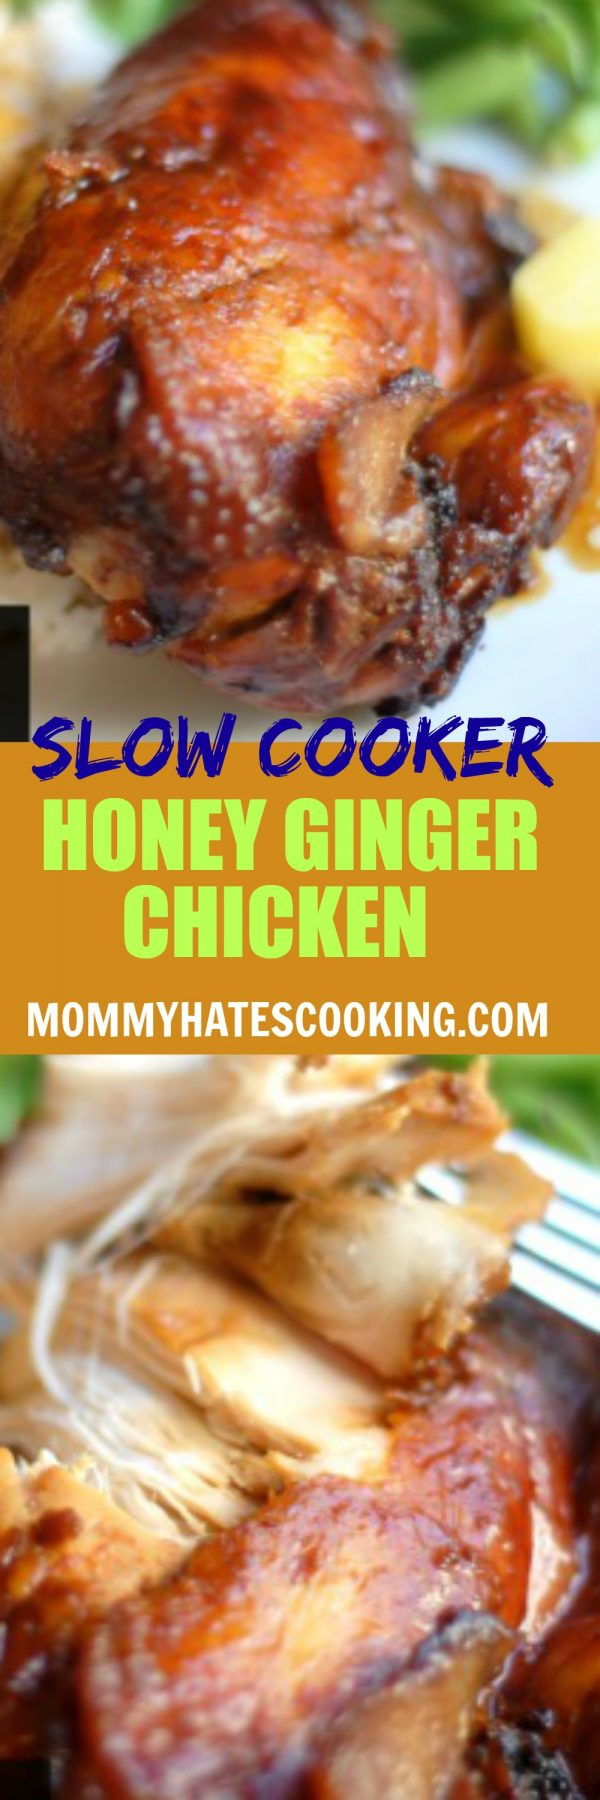 Slow Cooker Honey Ginger Chicken #GlutenFree